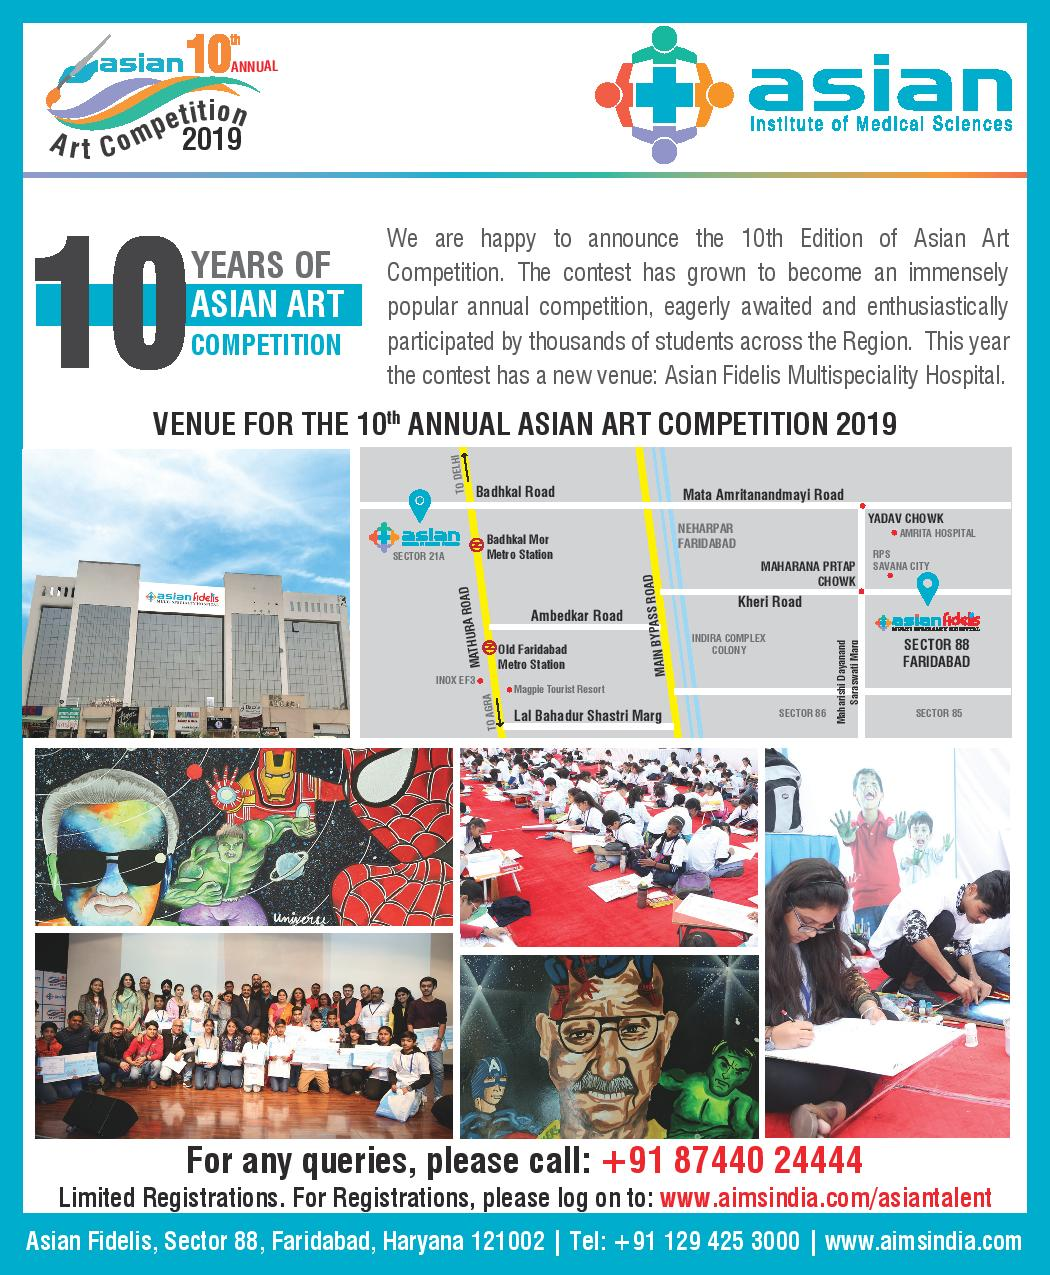 10 Years of Asian Art Competition